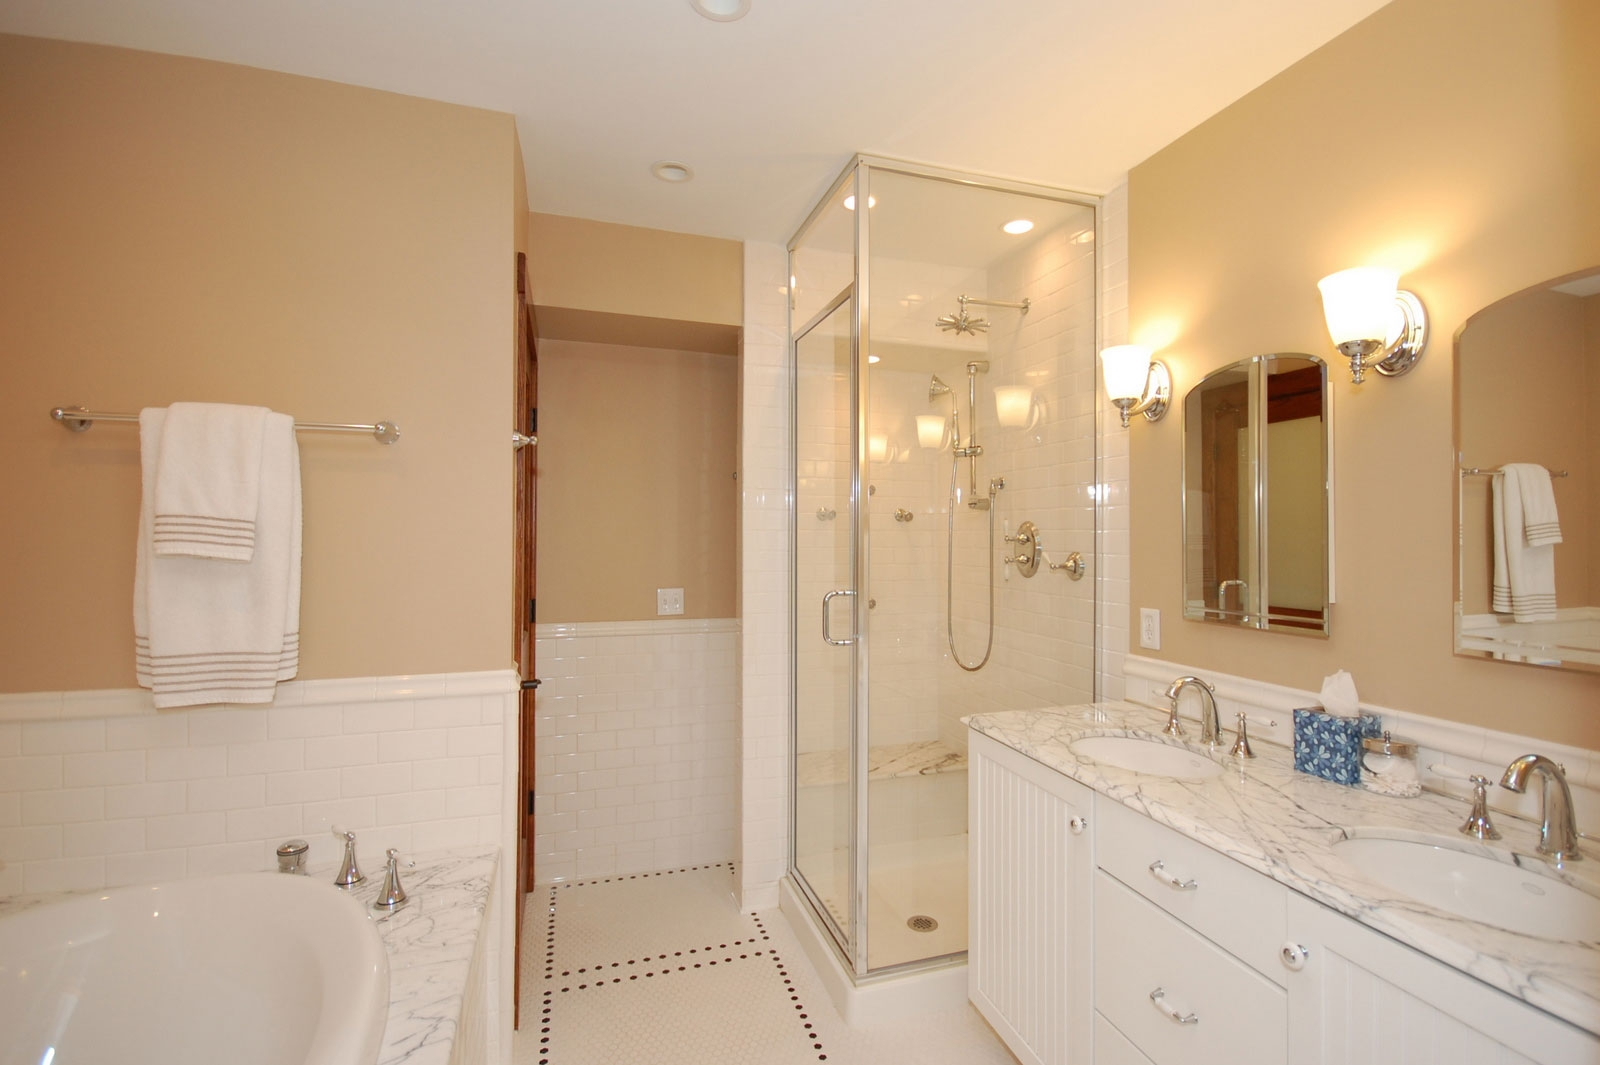 Design Ideas Small Bathroom with Separate Tub and Shower ... on Simple Small Bathroom Ideas  id=26821